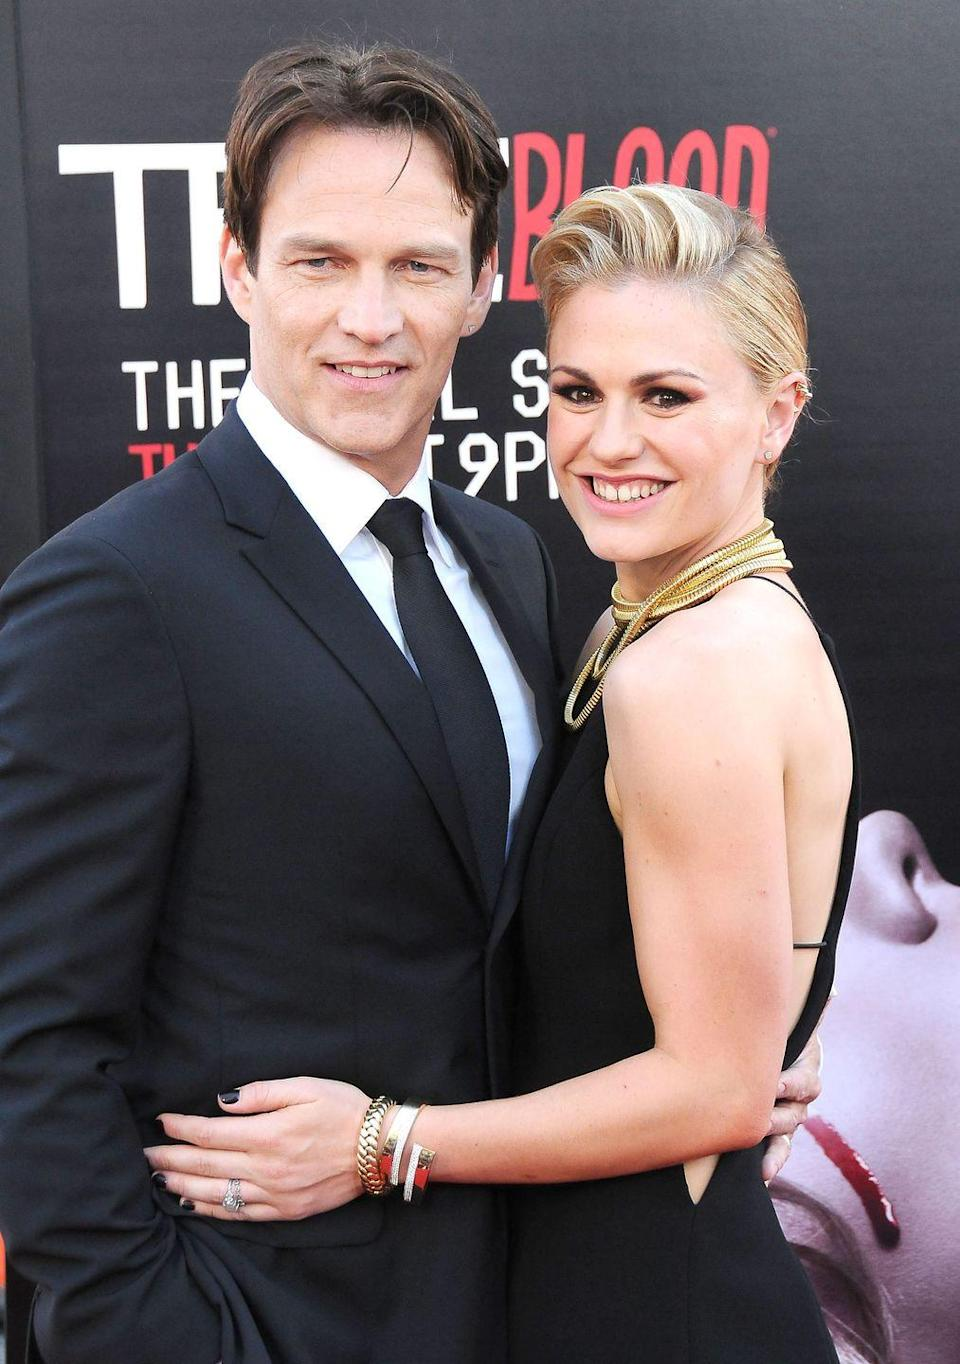 <p><strong>Age gap: </strong>13 years </p><p>For these <em>True Blood </em>costars it really was ~eternal love~. Anna and Stephen began dating during their show's first season in 2008 and got married two years later. They are now parents to twins Charlie and Poppy. </p>